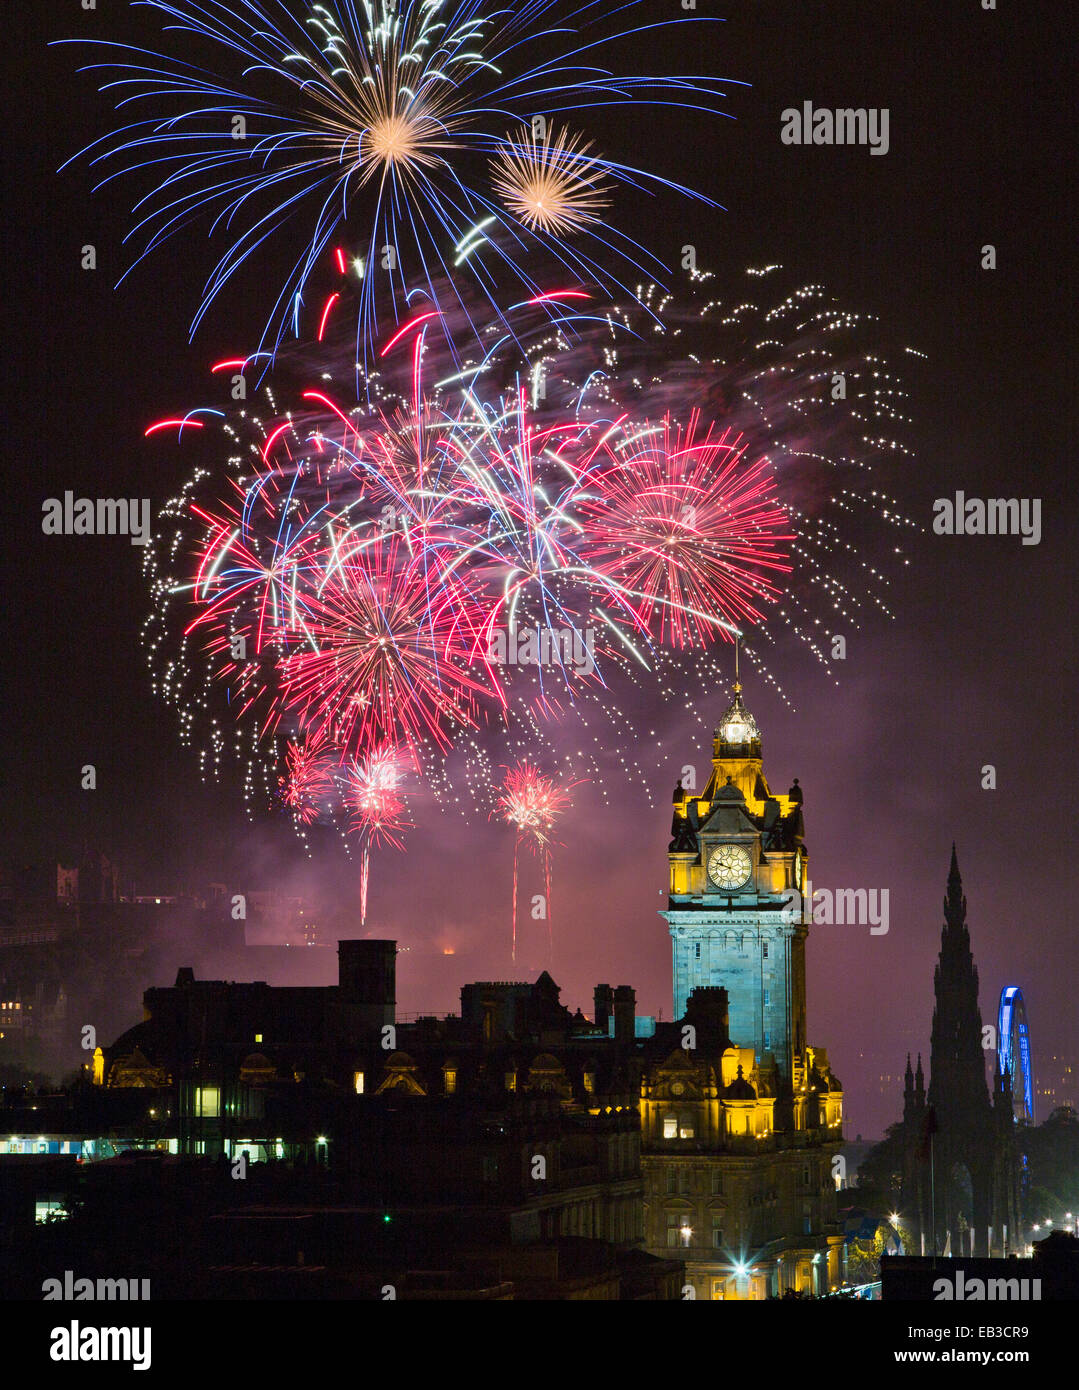 UK, Scotland, Edinburgh, Fireworks exploding above illuminated Edinburgh Castle during Edinburgh Fringe Festival - Stock Image